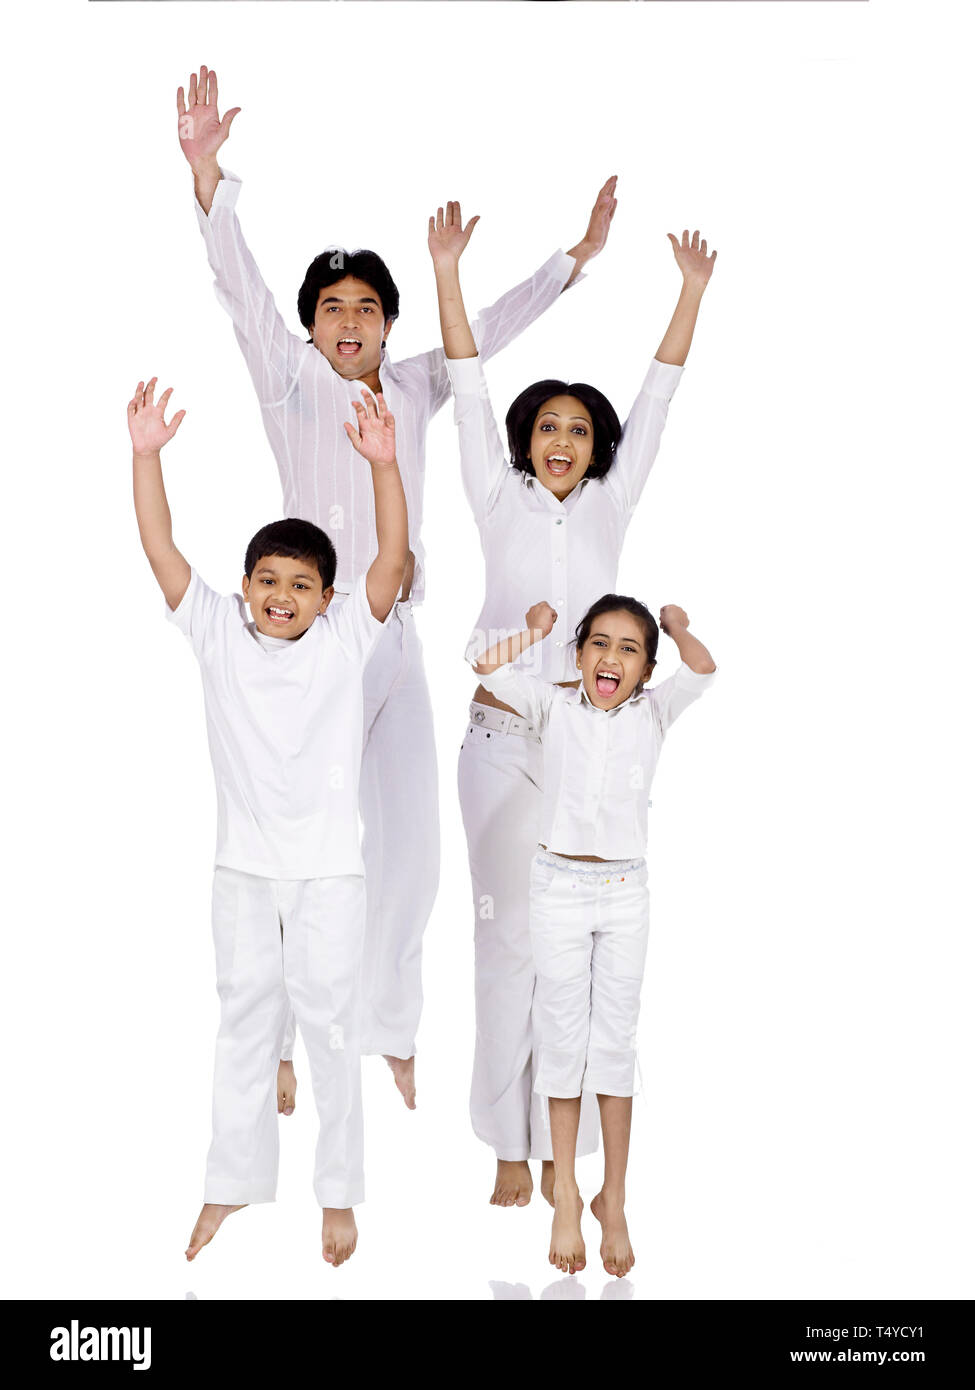 PORTRAIT OF FAMILY OF FOUR GRESSED IN WHITE JUMPING UP IN JOY - Stock Image